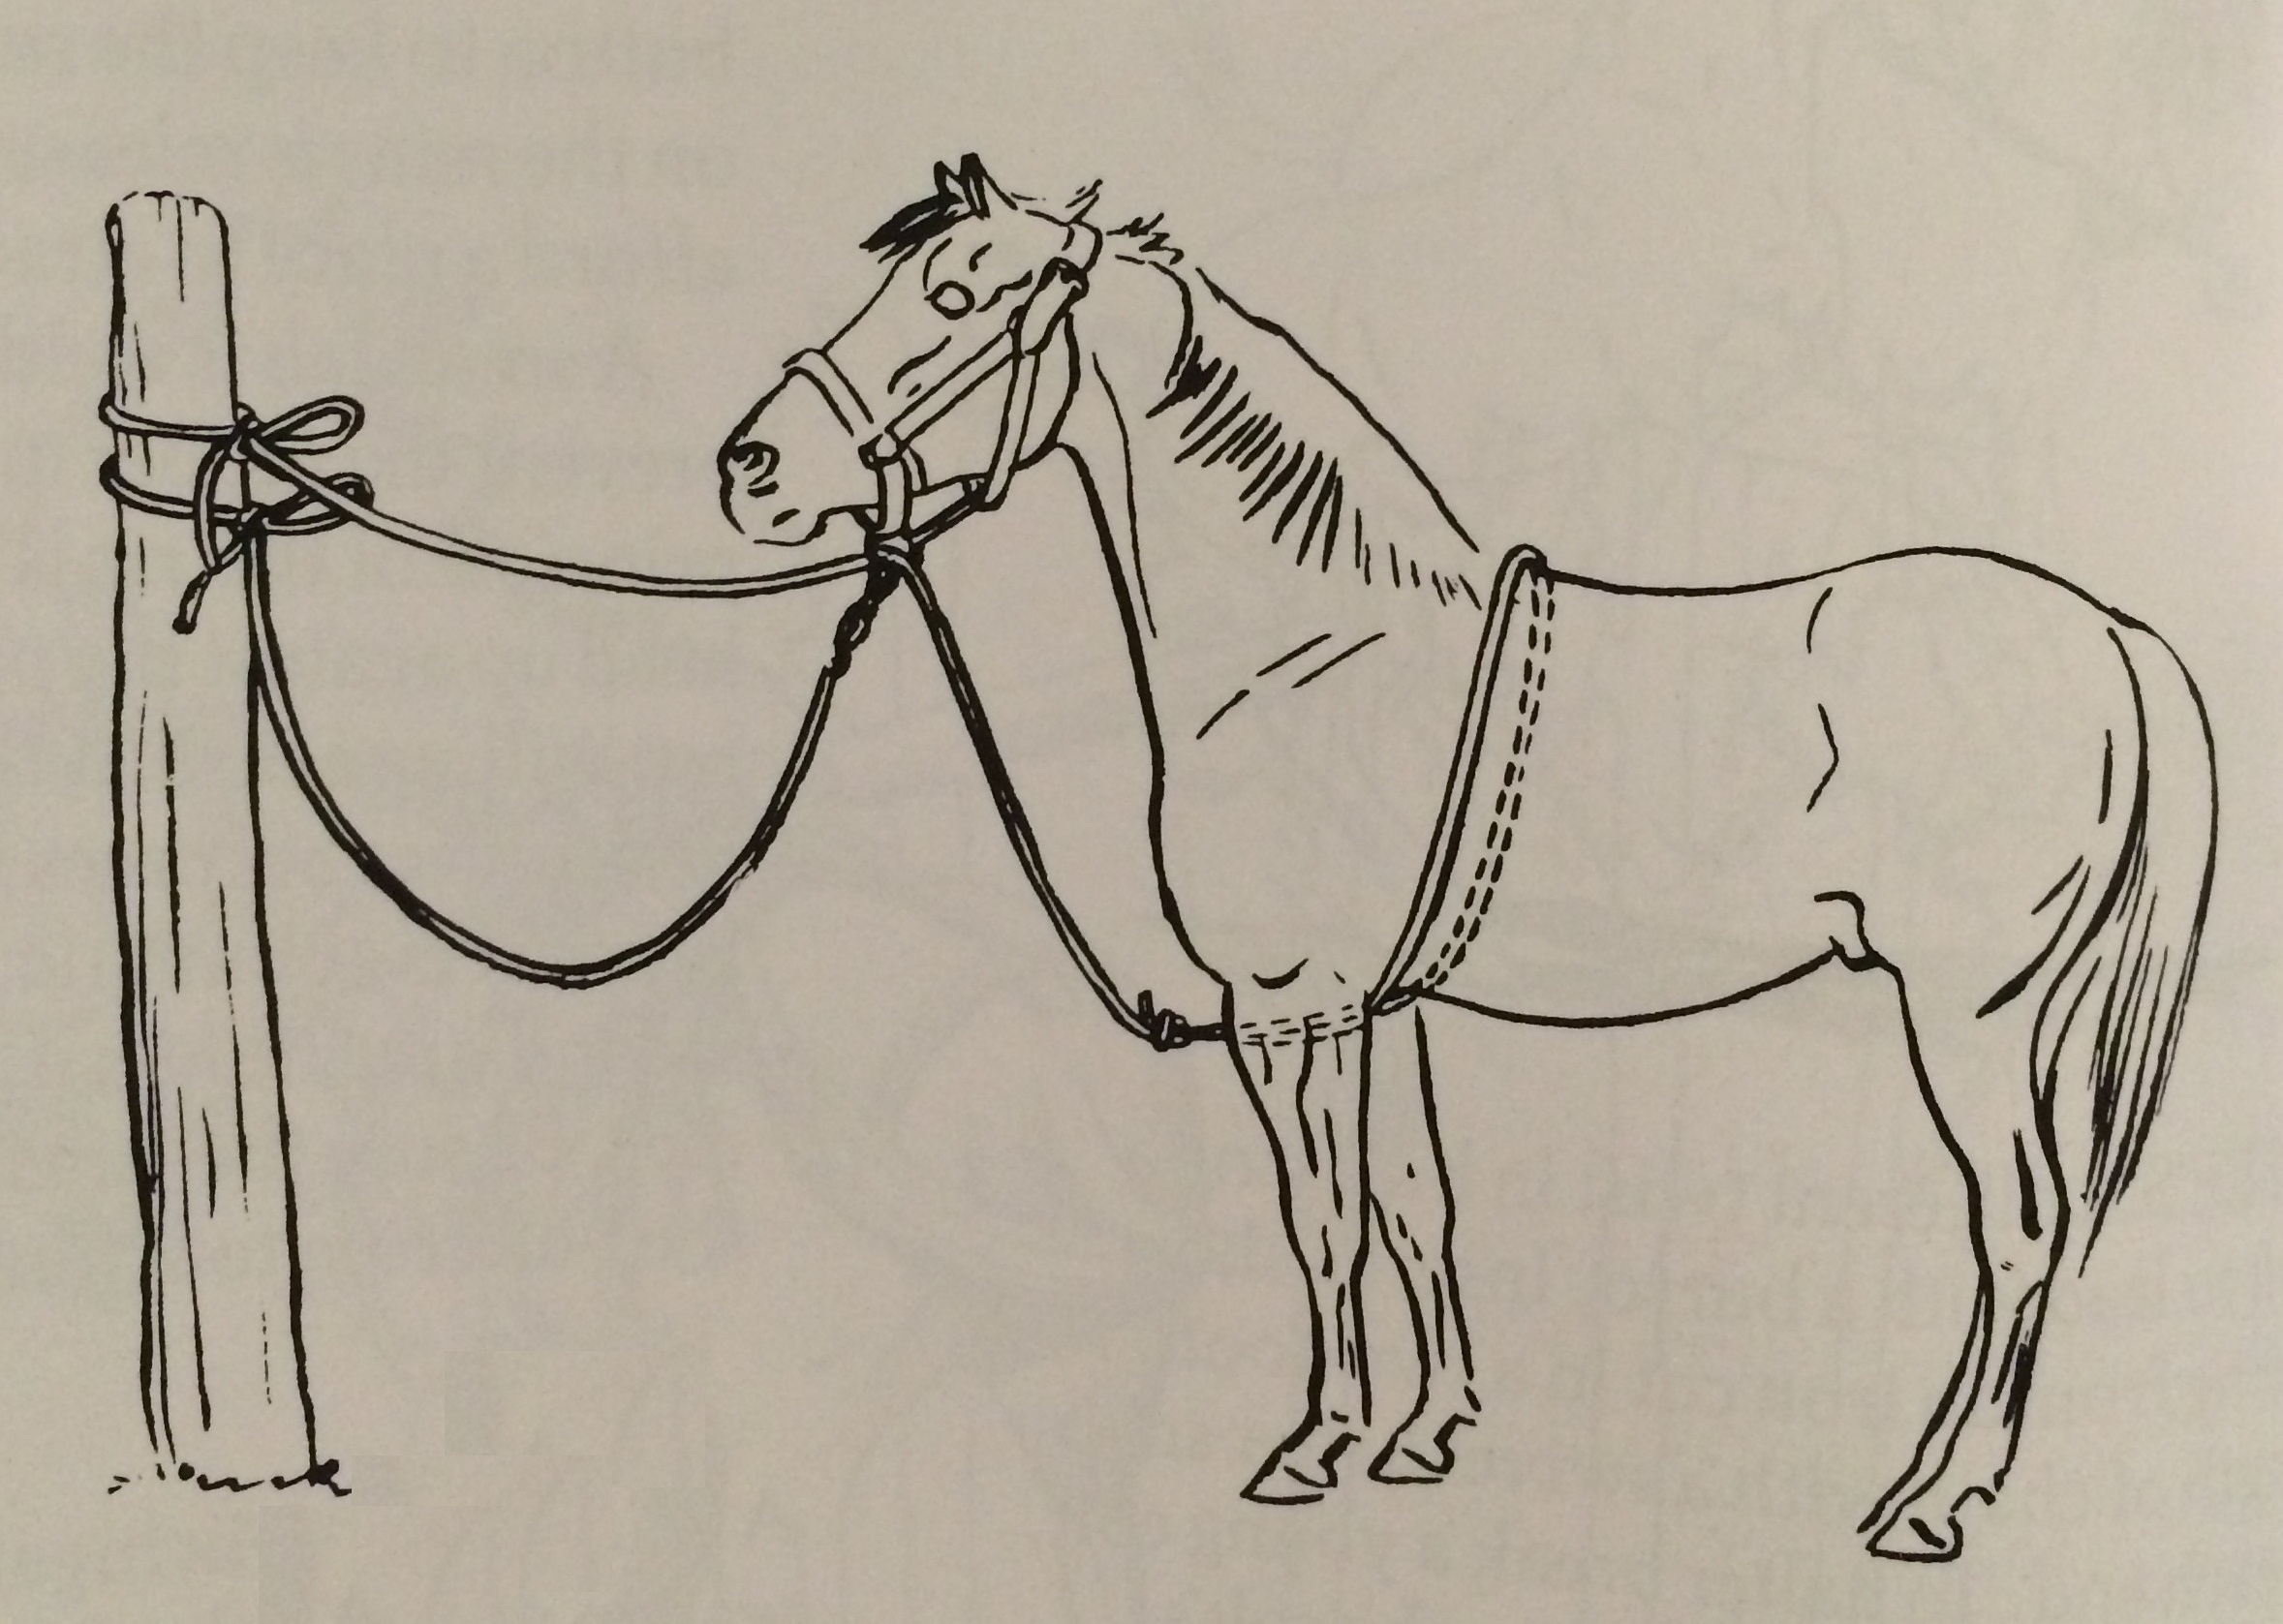 Drawn horse tied A up to tie